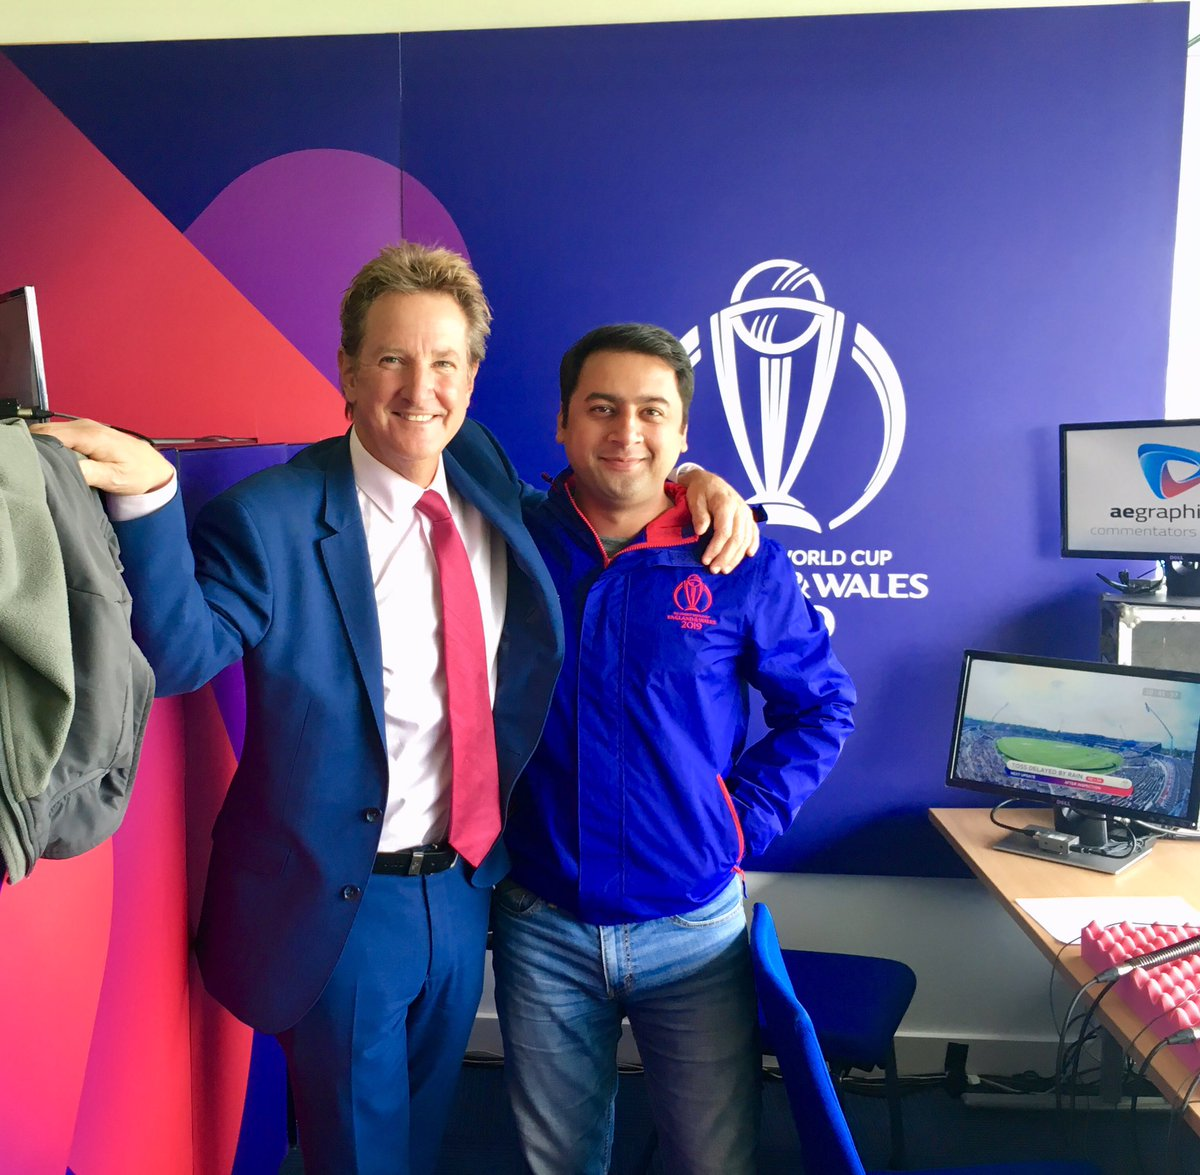 The James Bond of cricket commentary. #CWC19